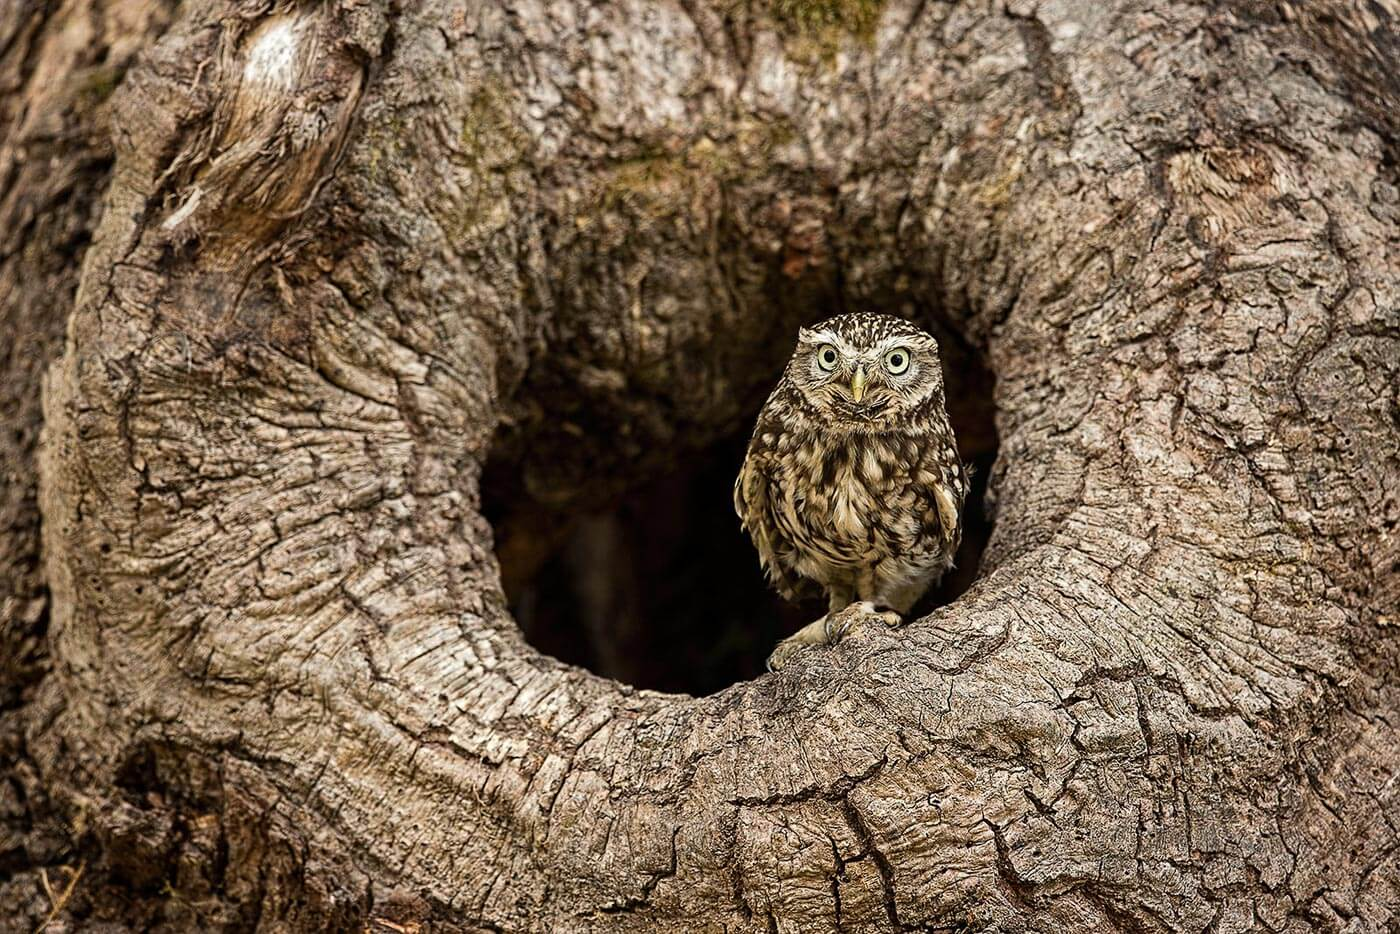 PWP_030_Little_Owl_PWP_019_Little_Owl_AH0R6152A_16